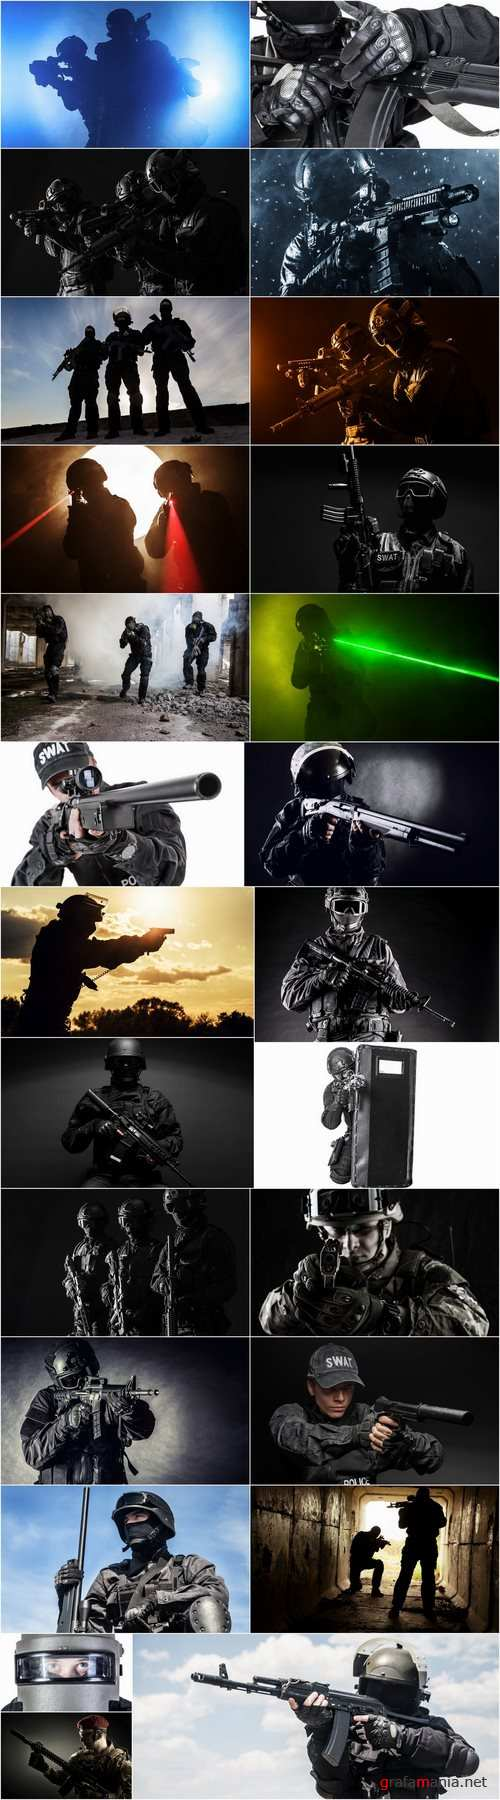 Special forces antiterrorist squad soldier soldiers police weapons 25 HQ Jpeg